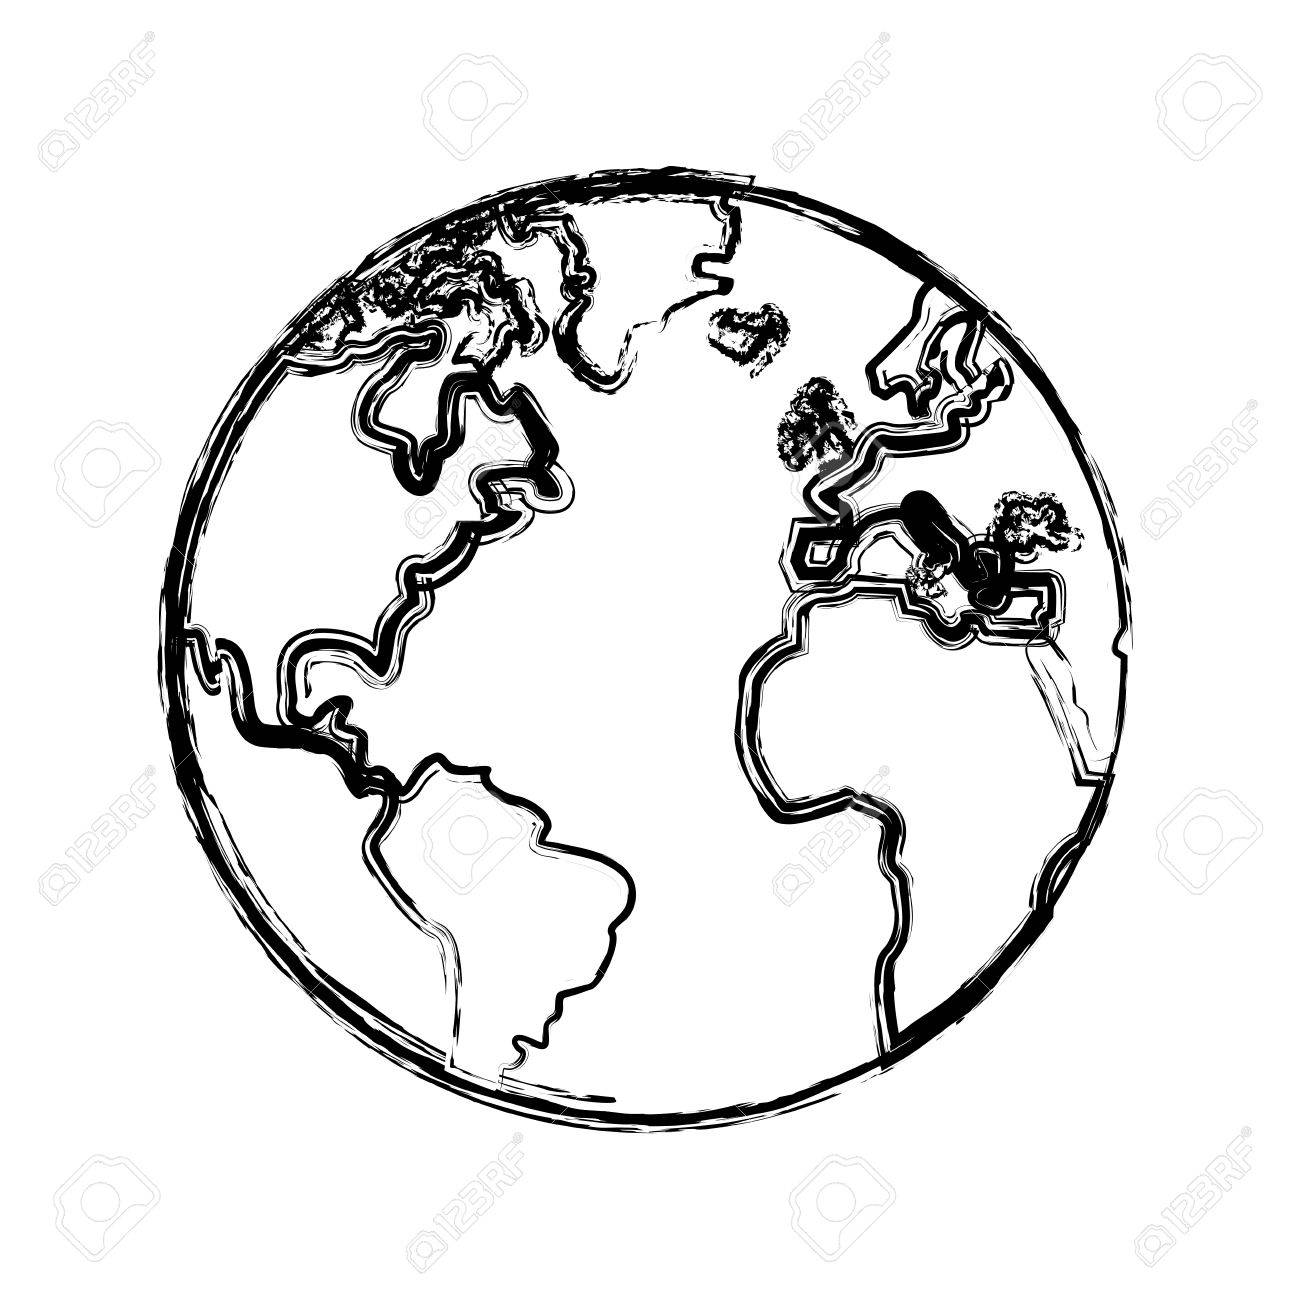 World map for drawing at getdrawings free for personal use 1300x1300 sketch globe world earth map icon vector illustration royalty free gumiabroncs Choice Image